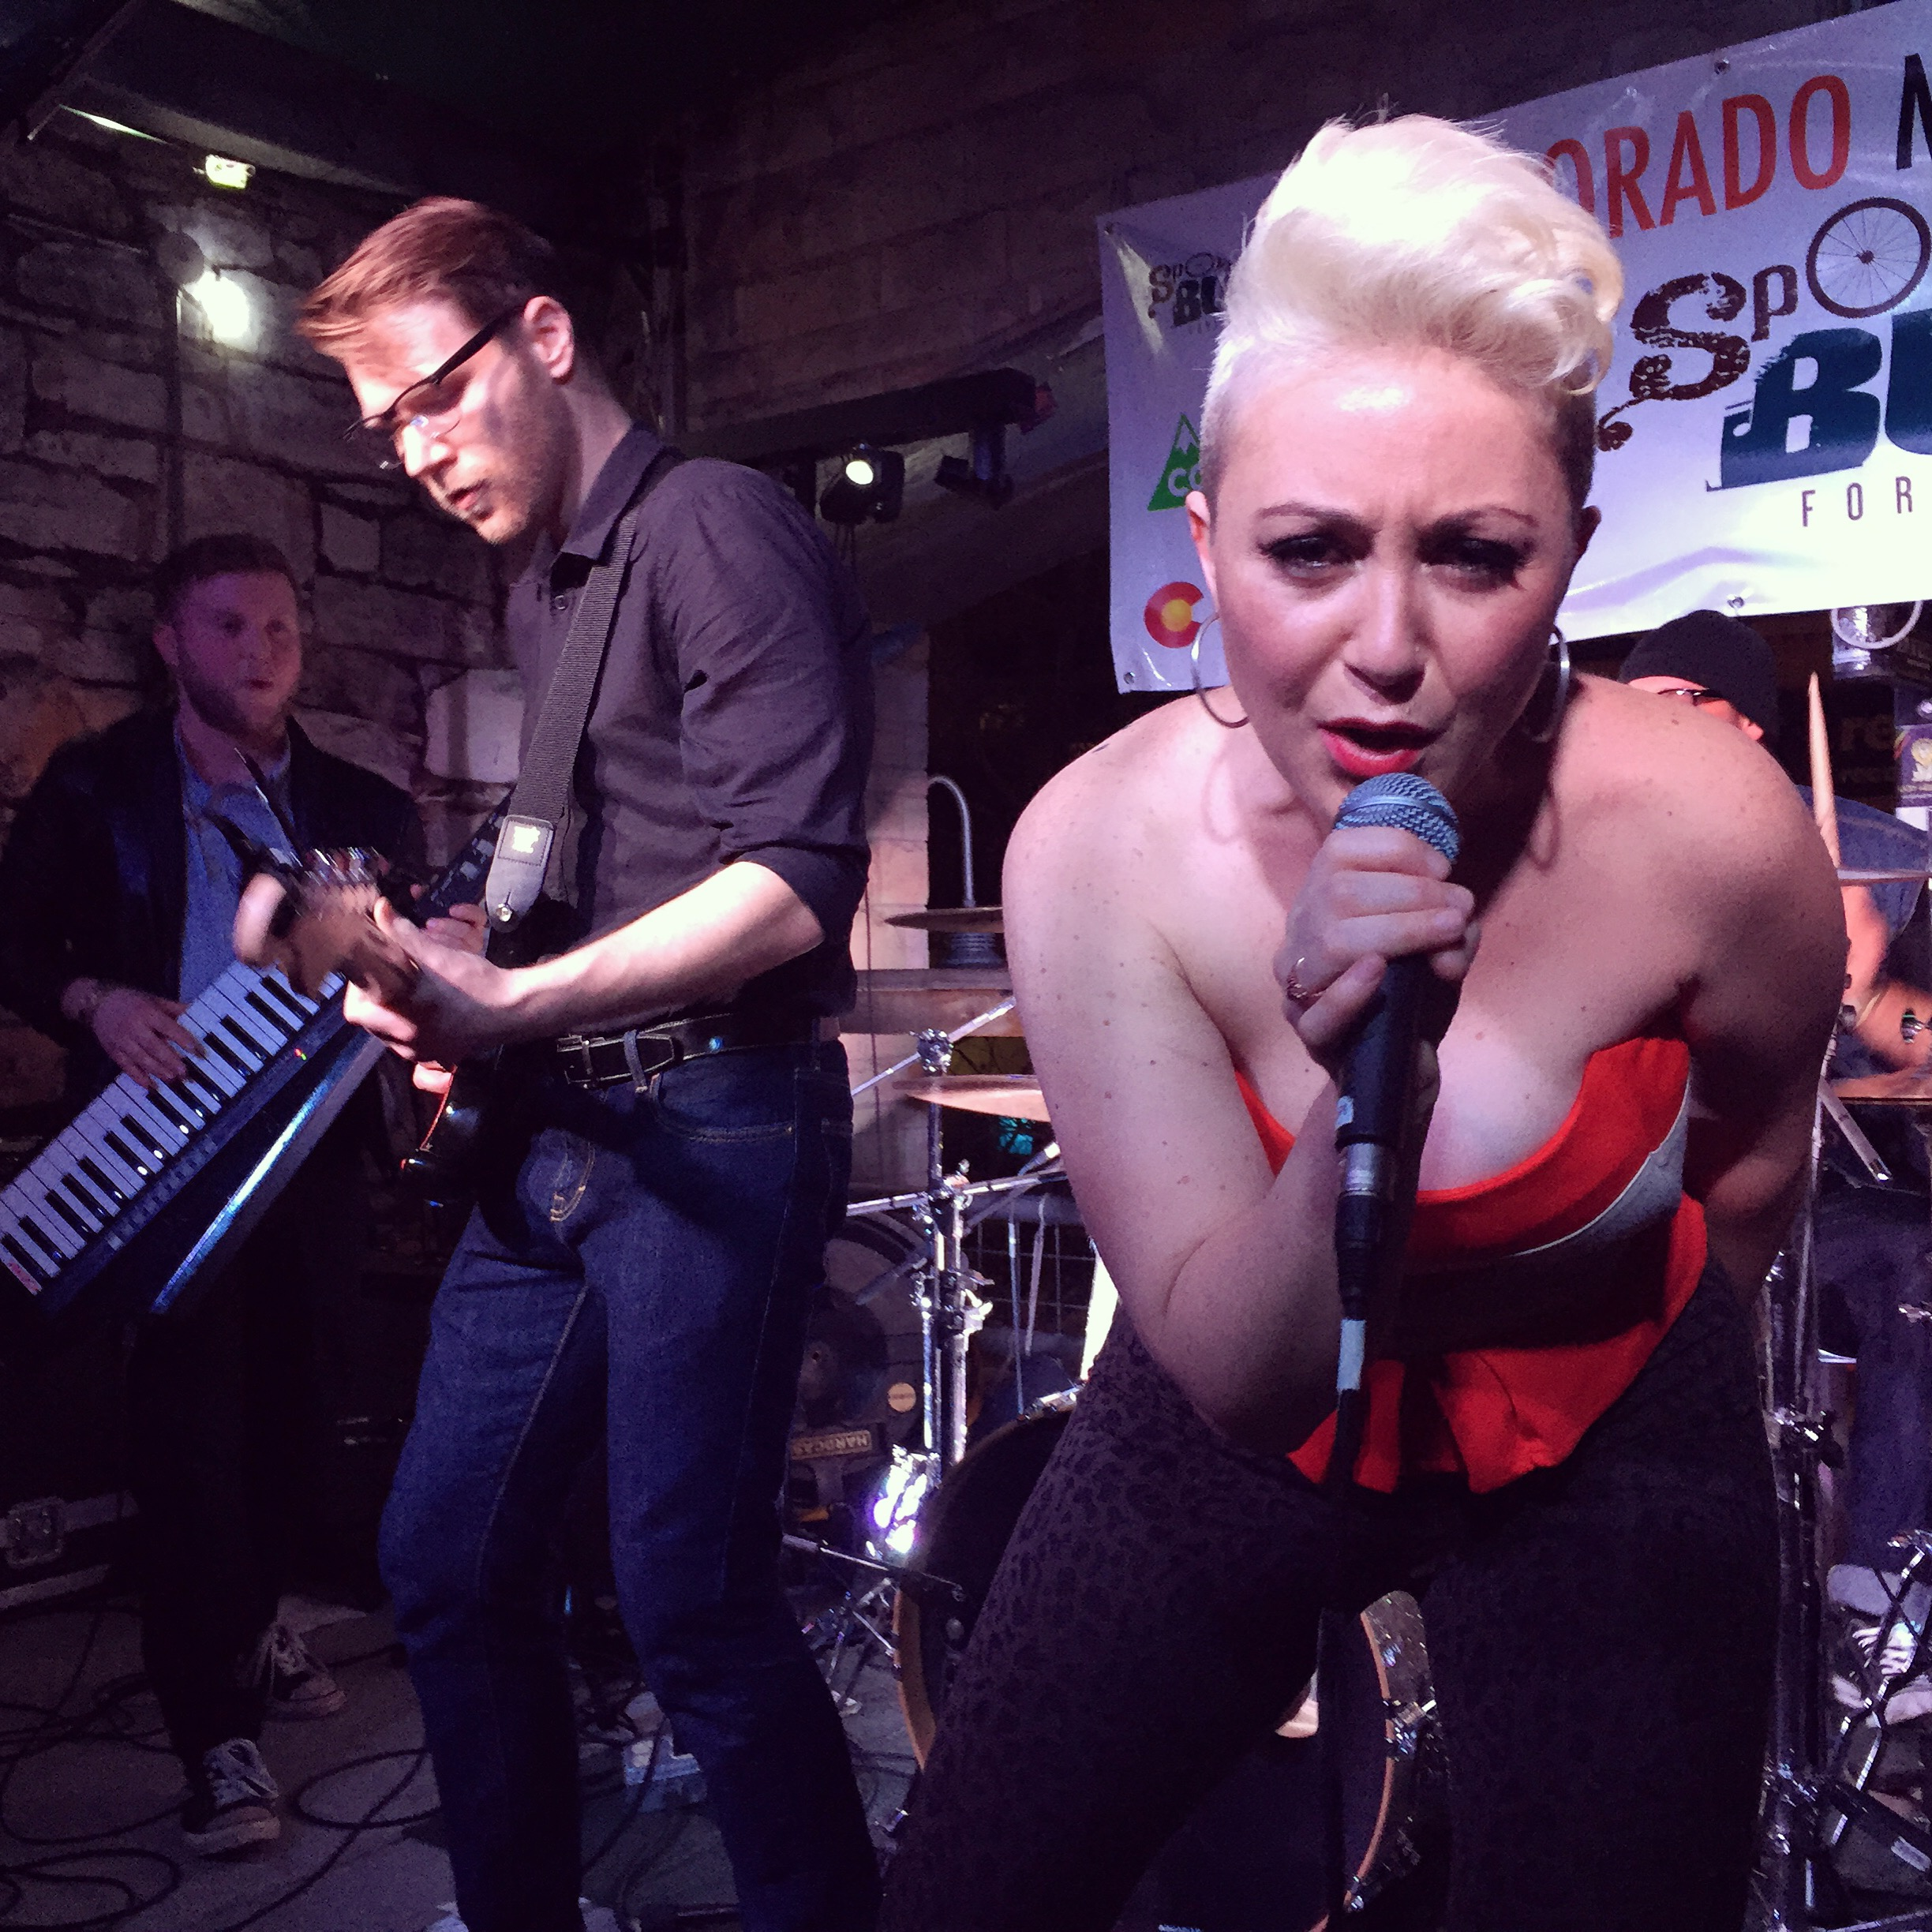 Lyndsay Evans and Sexy Ester performed at the Colorado Music Party during SXSW 2015. Photo by Quentin Young